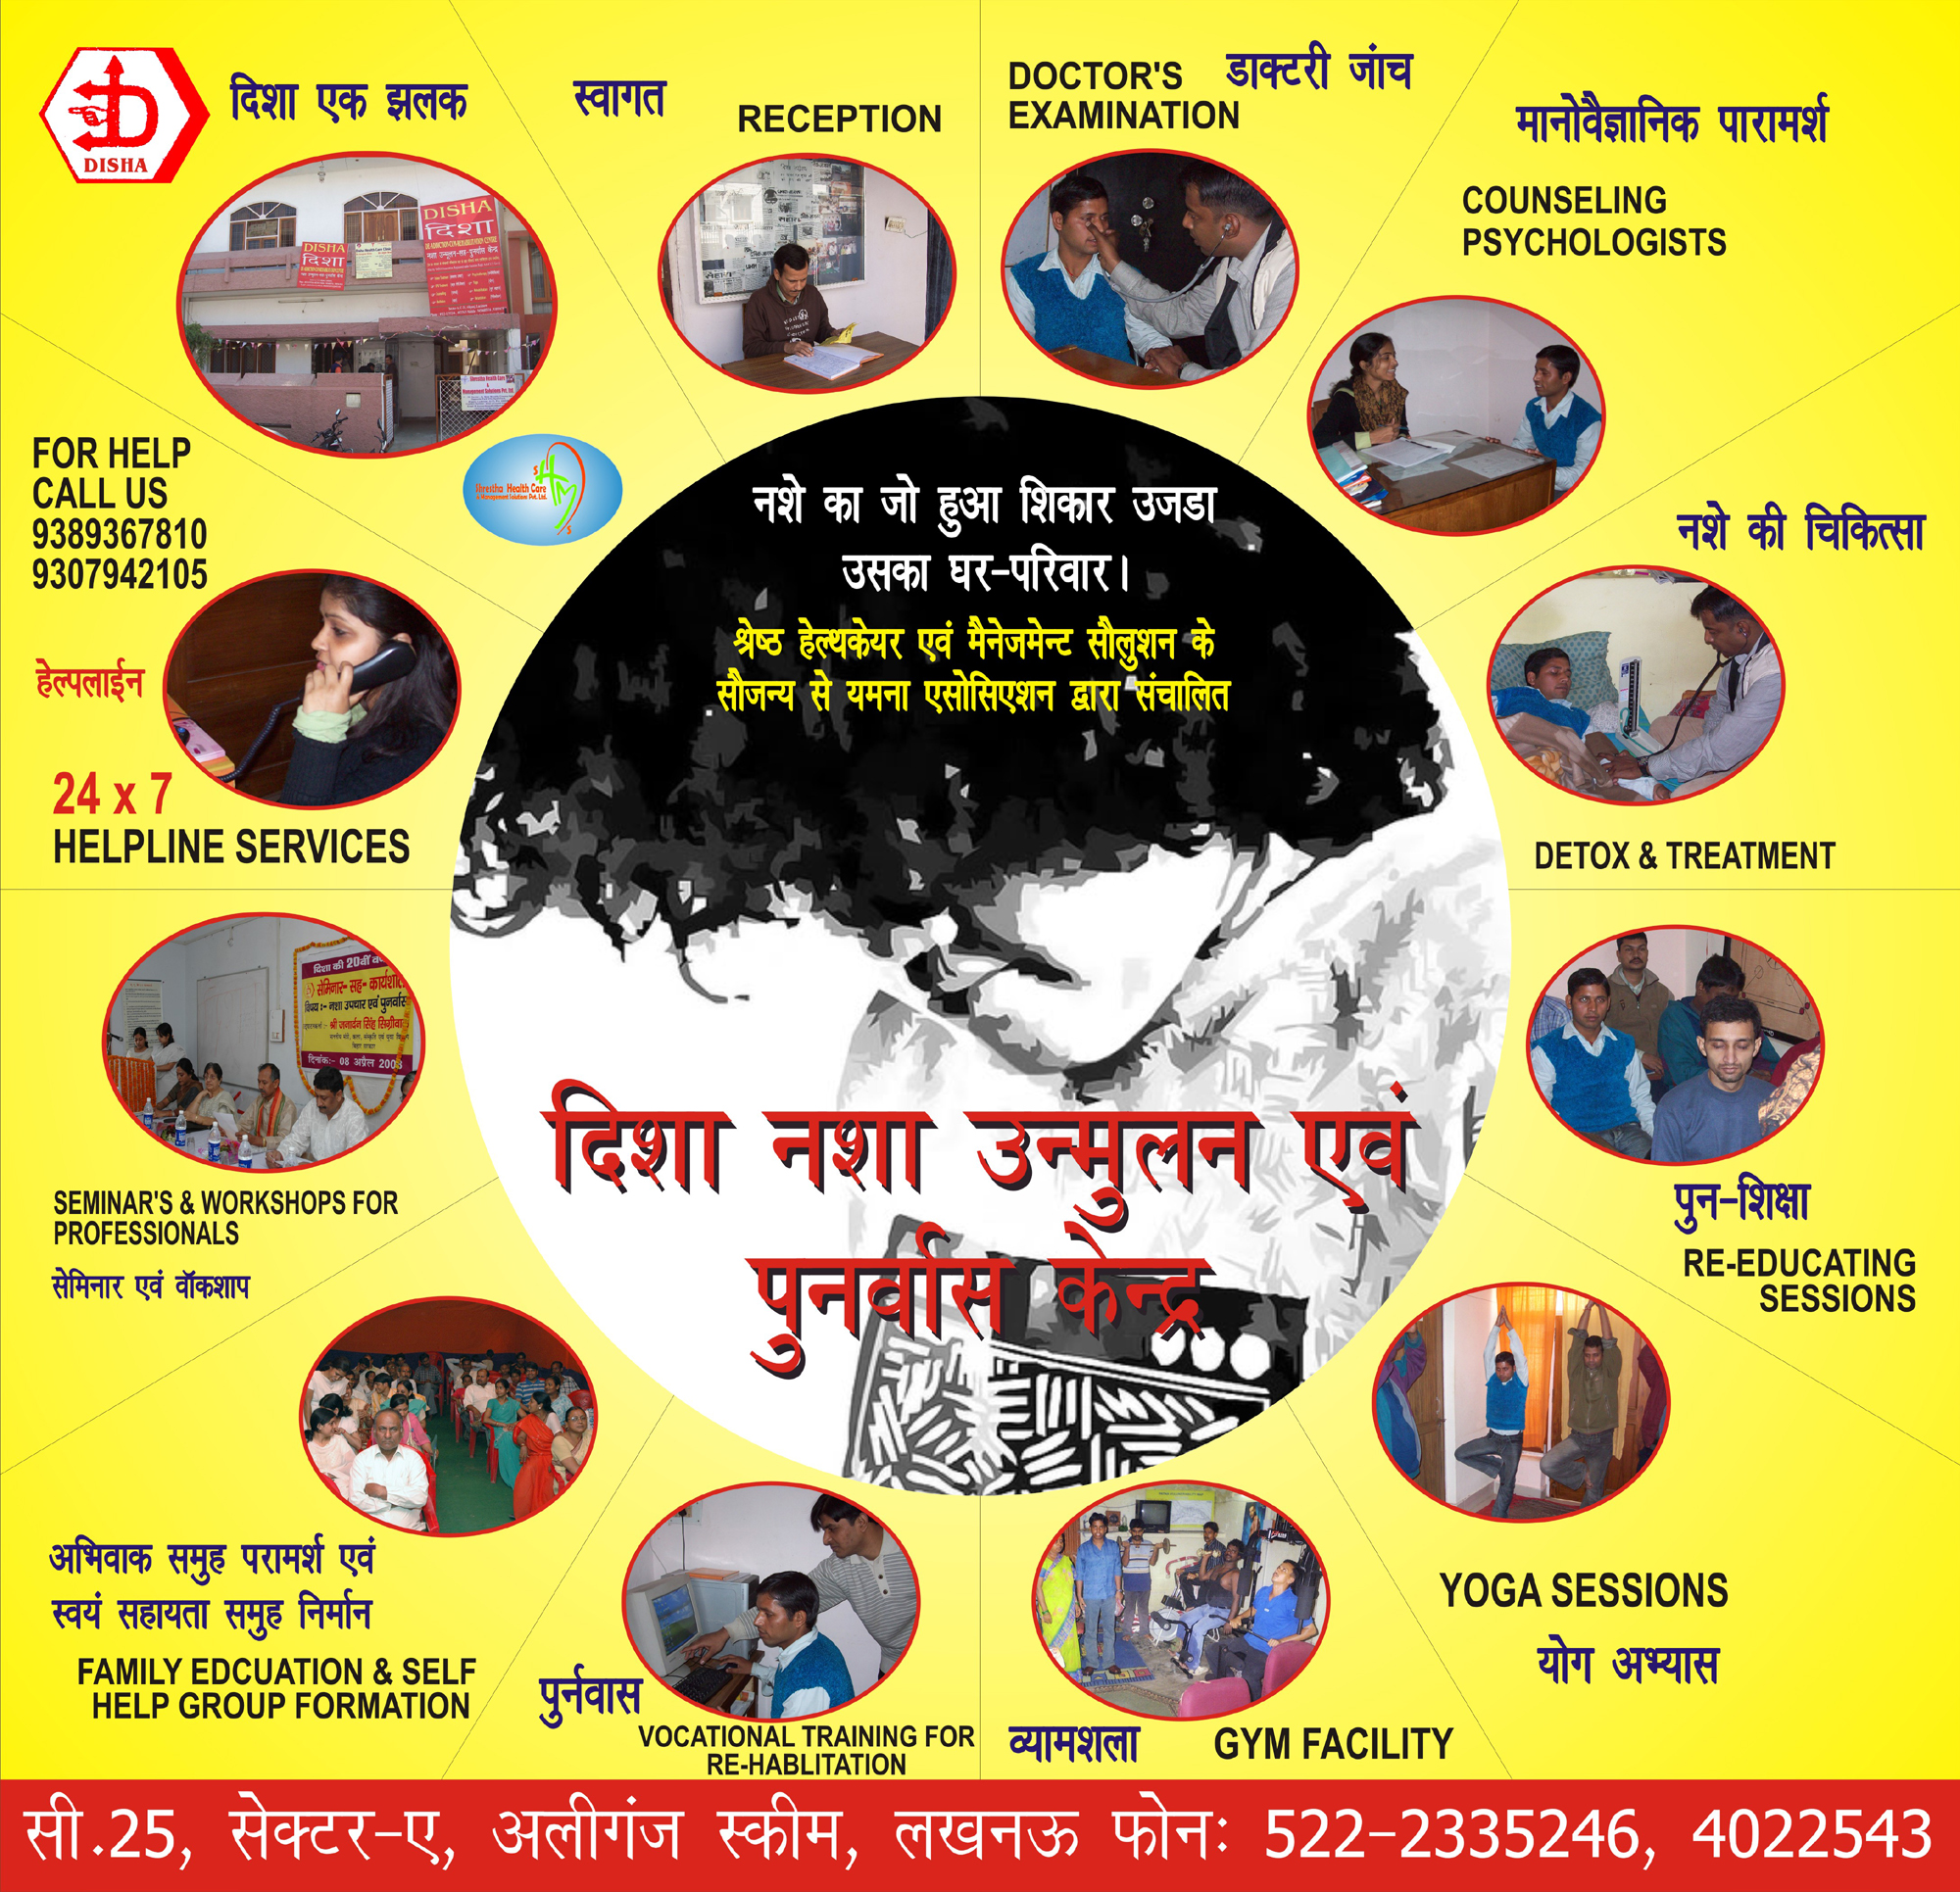 Disha Deaddiction Rehab Centre